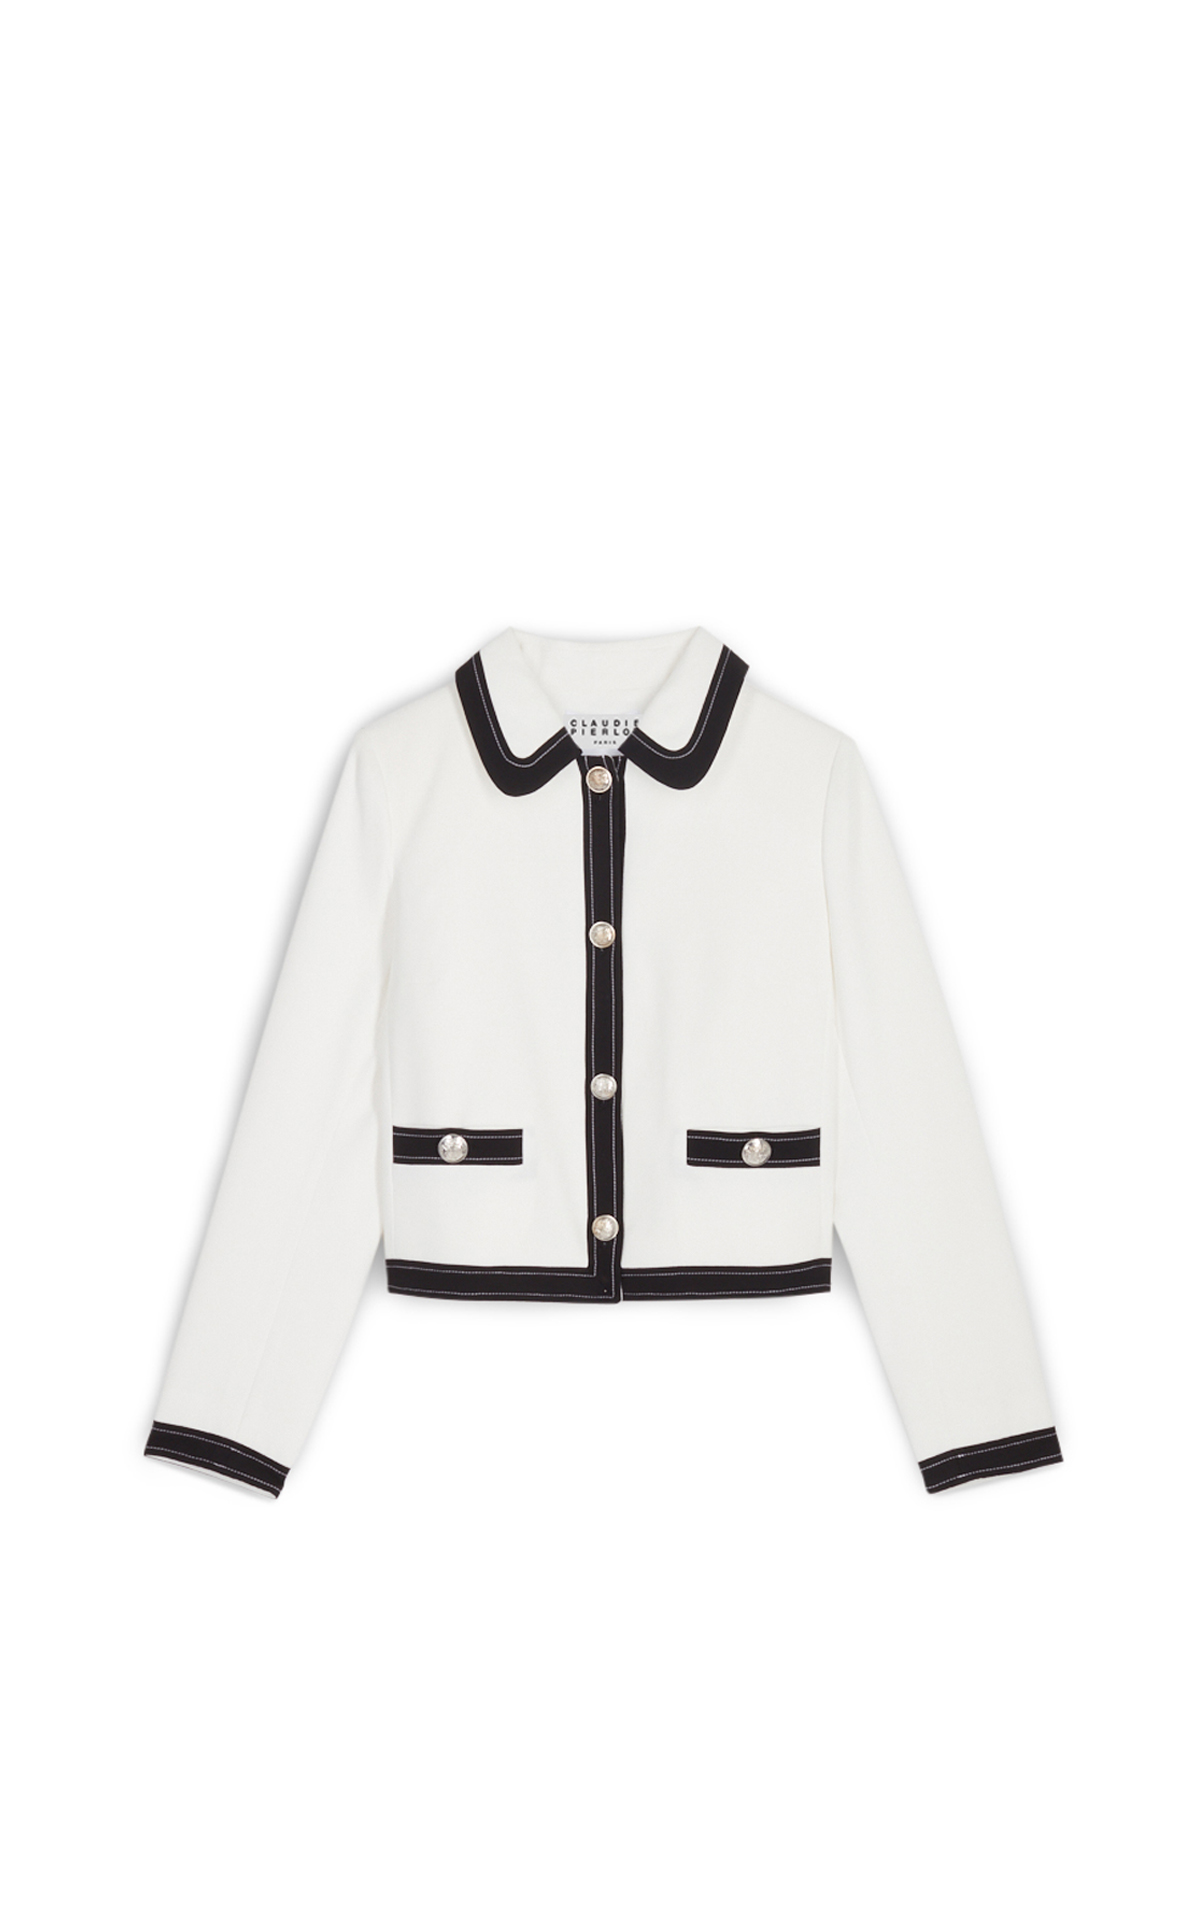 Claudie Pierlot Ecru Vallea jacket*